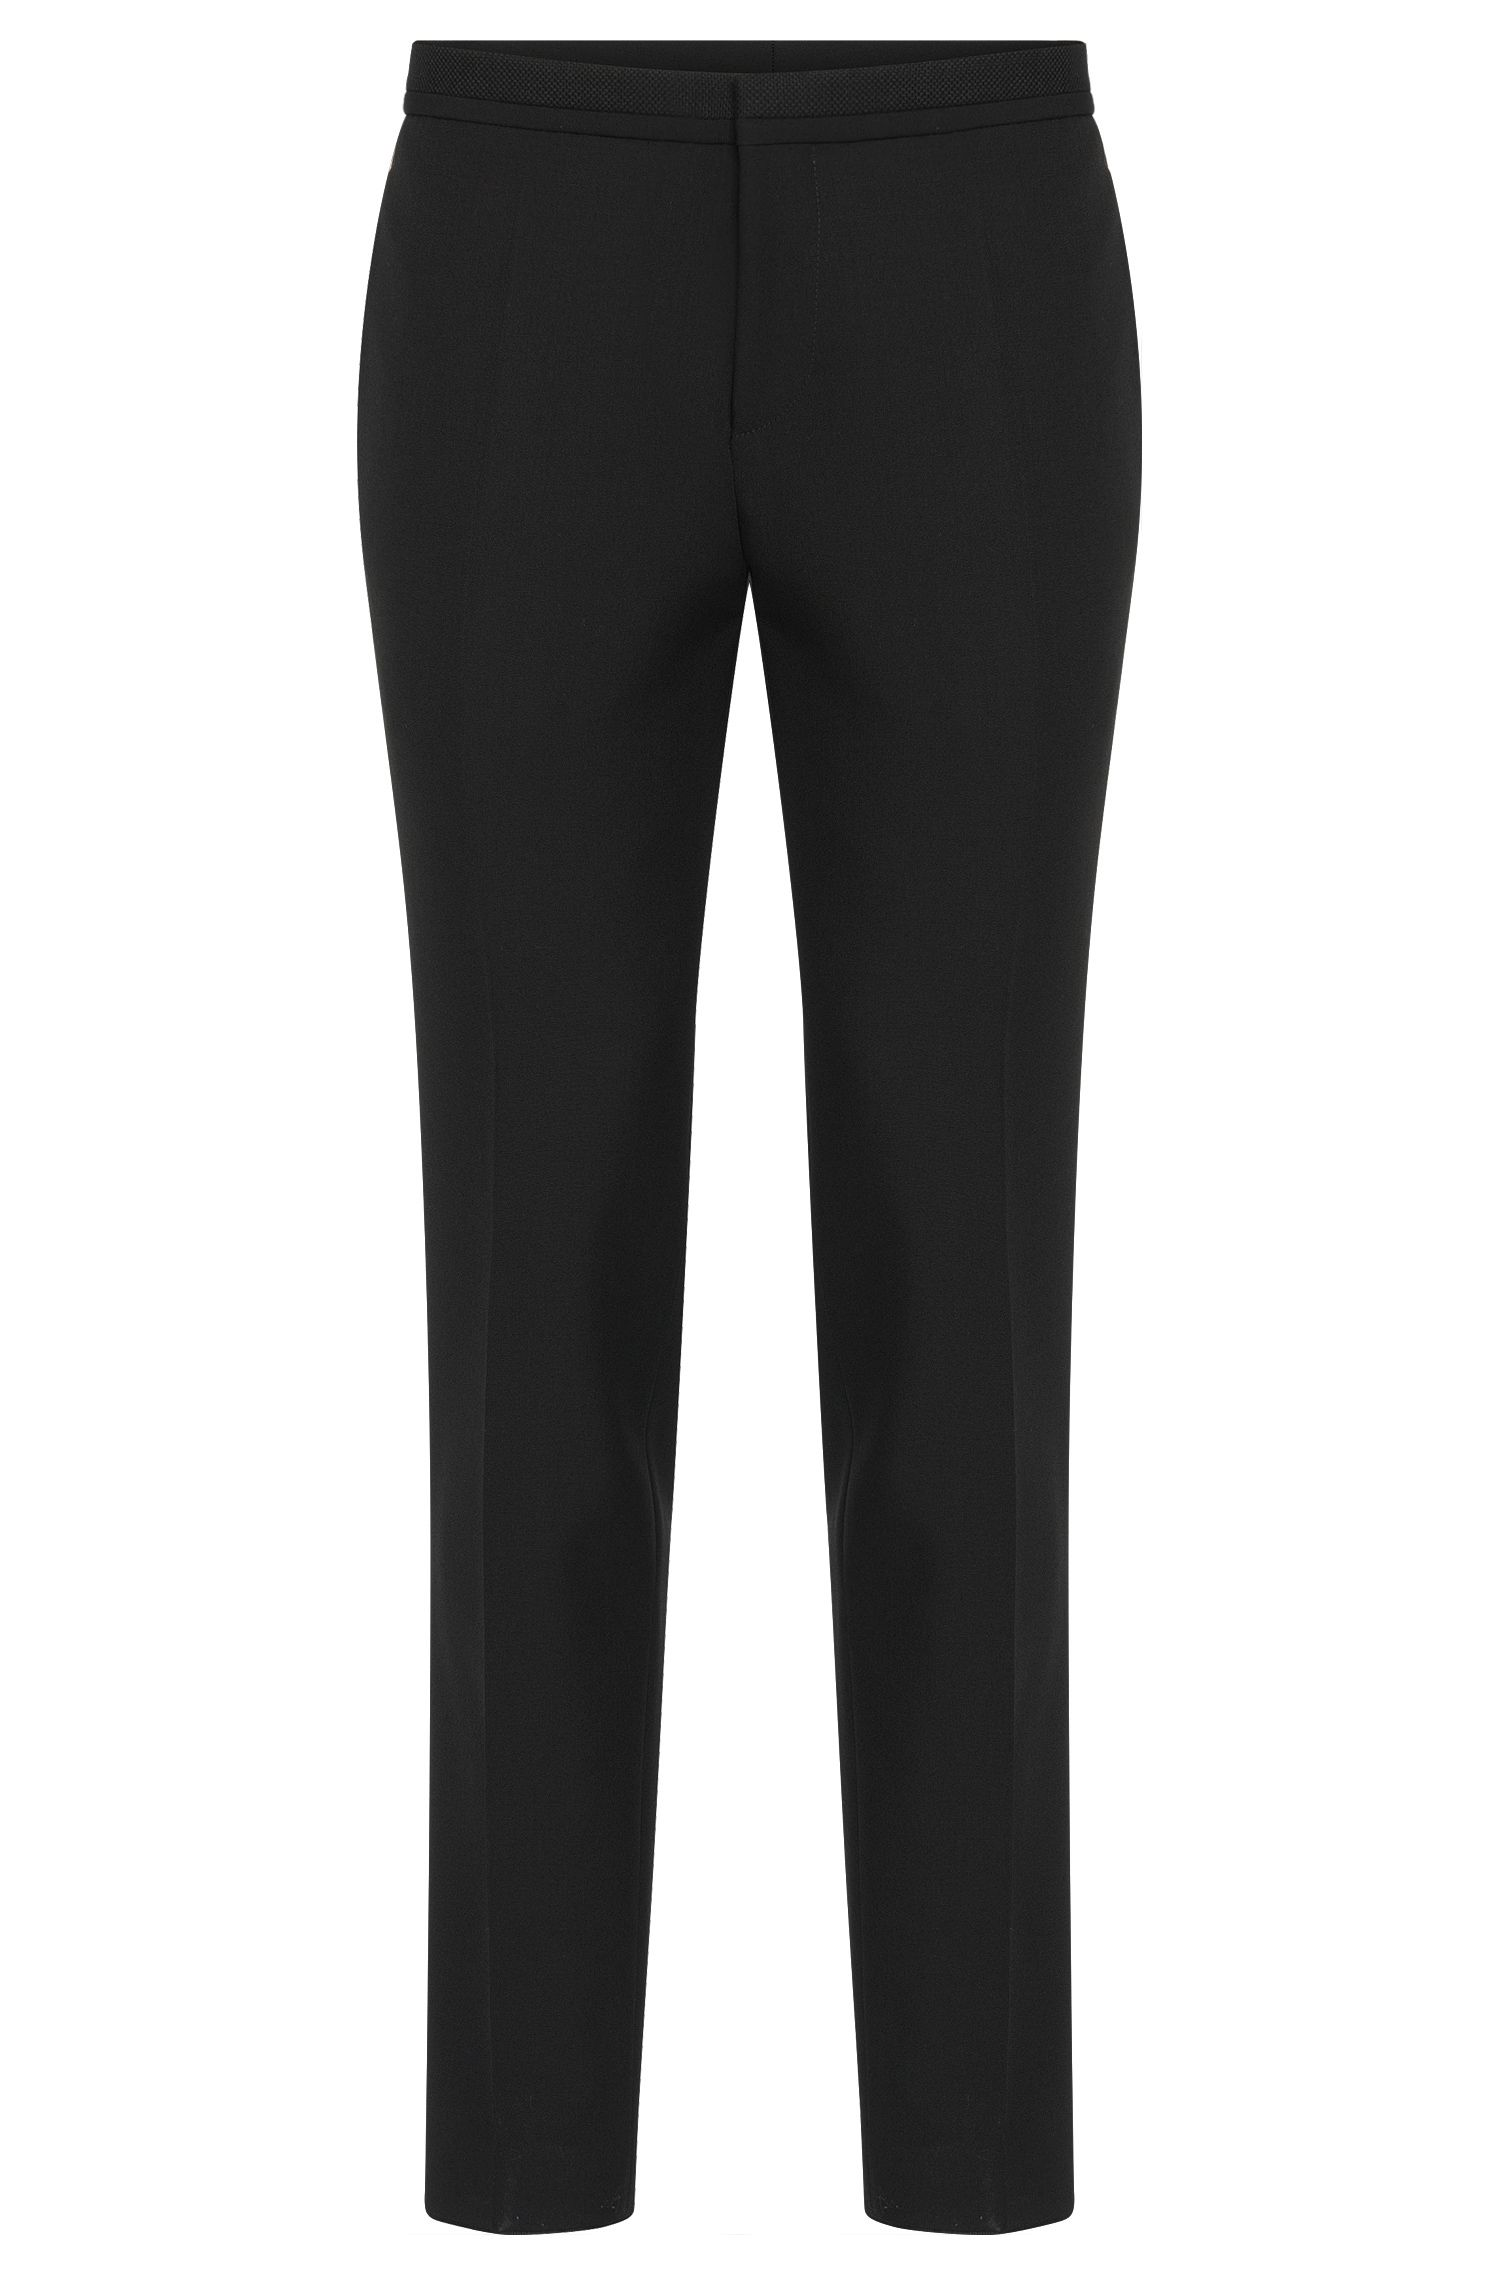 'Wynn' | Extra Slim Fit, Virgin Wool Mohair Dress Pants